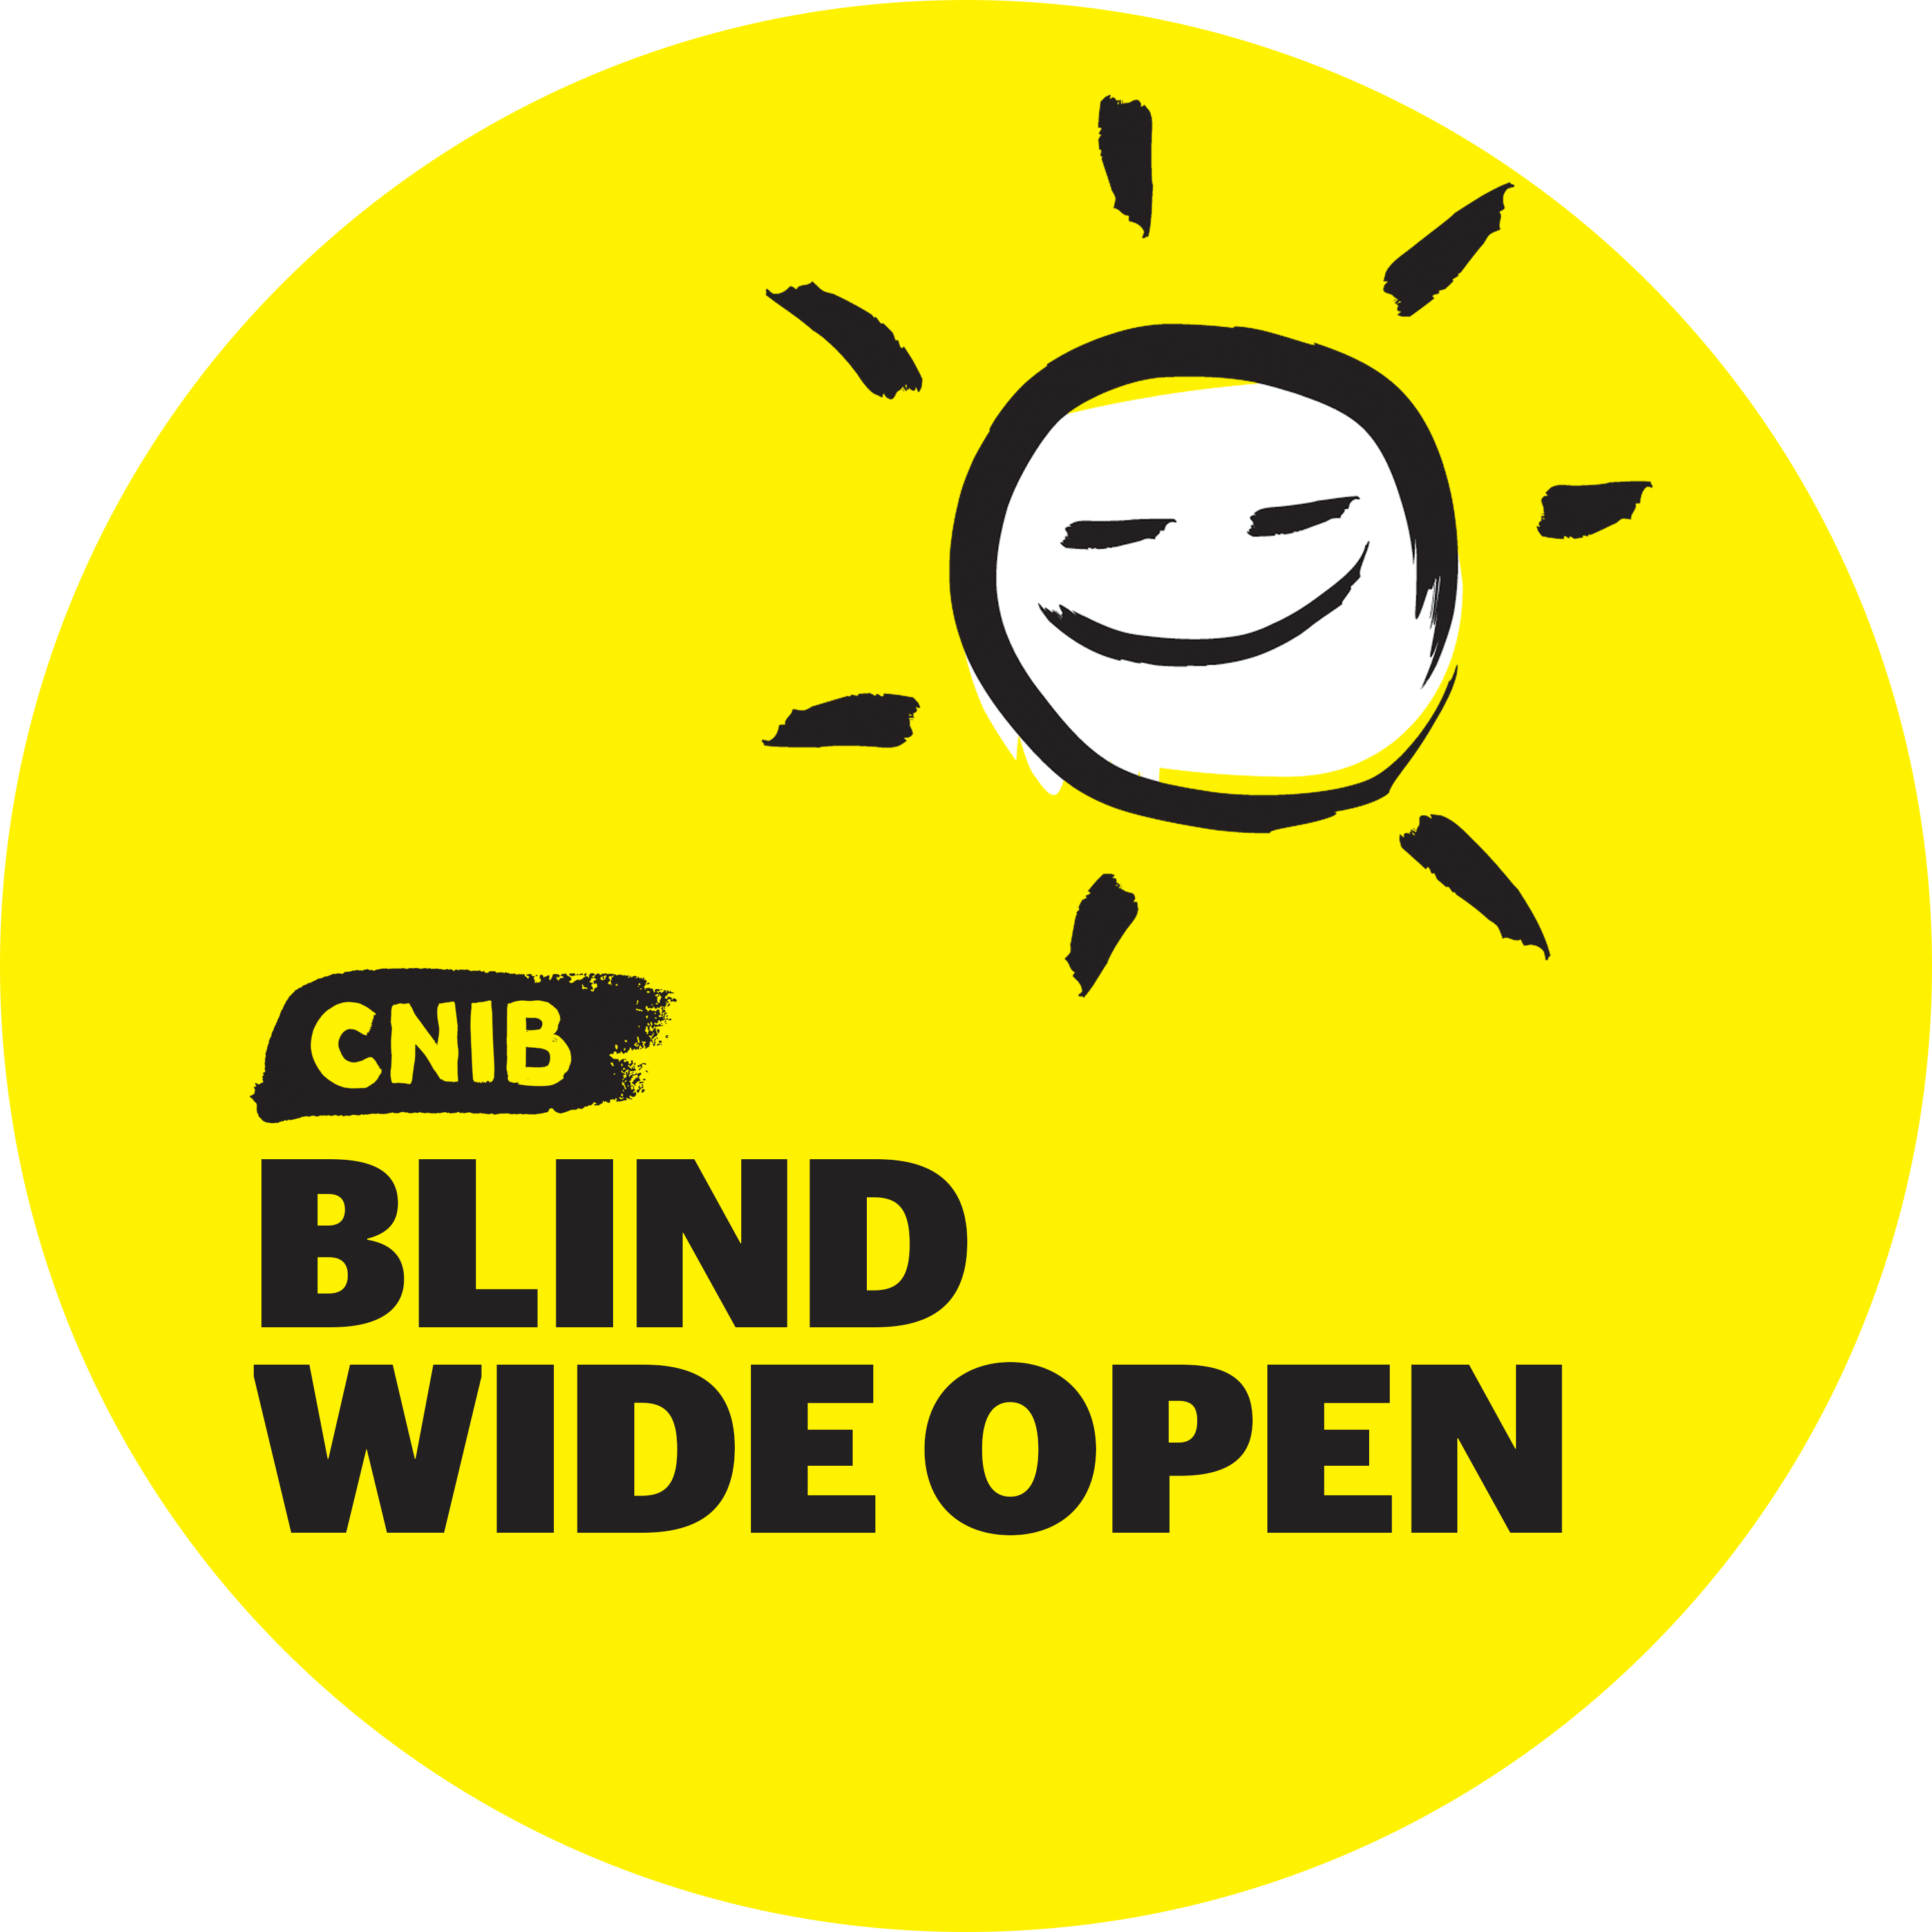 CNIB Blind Wide Open